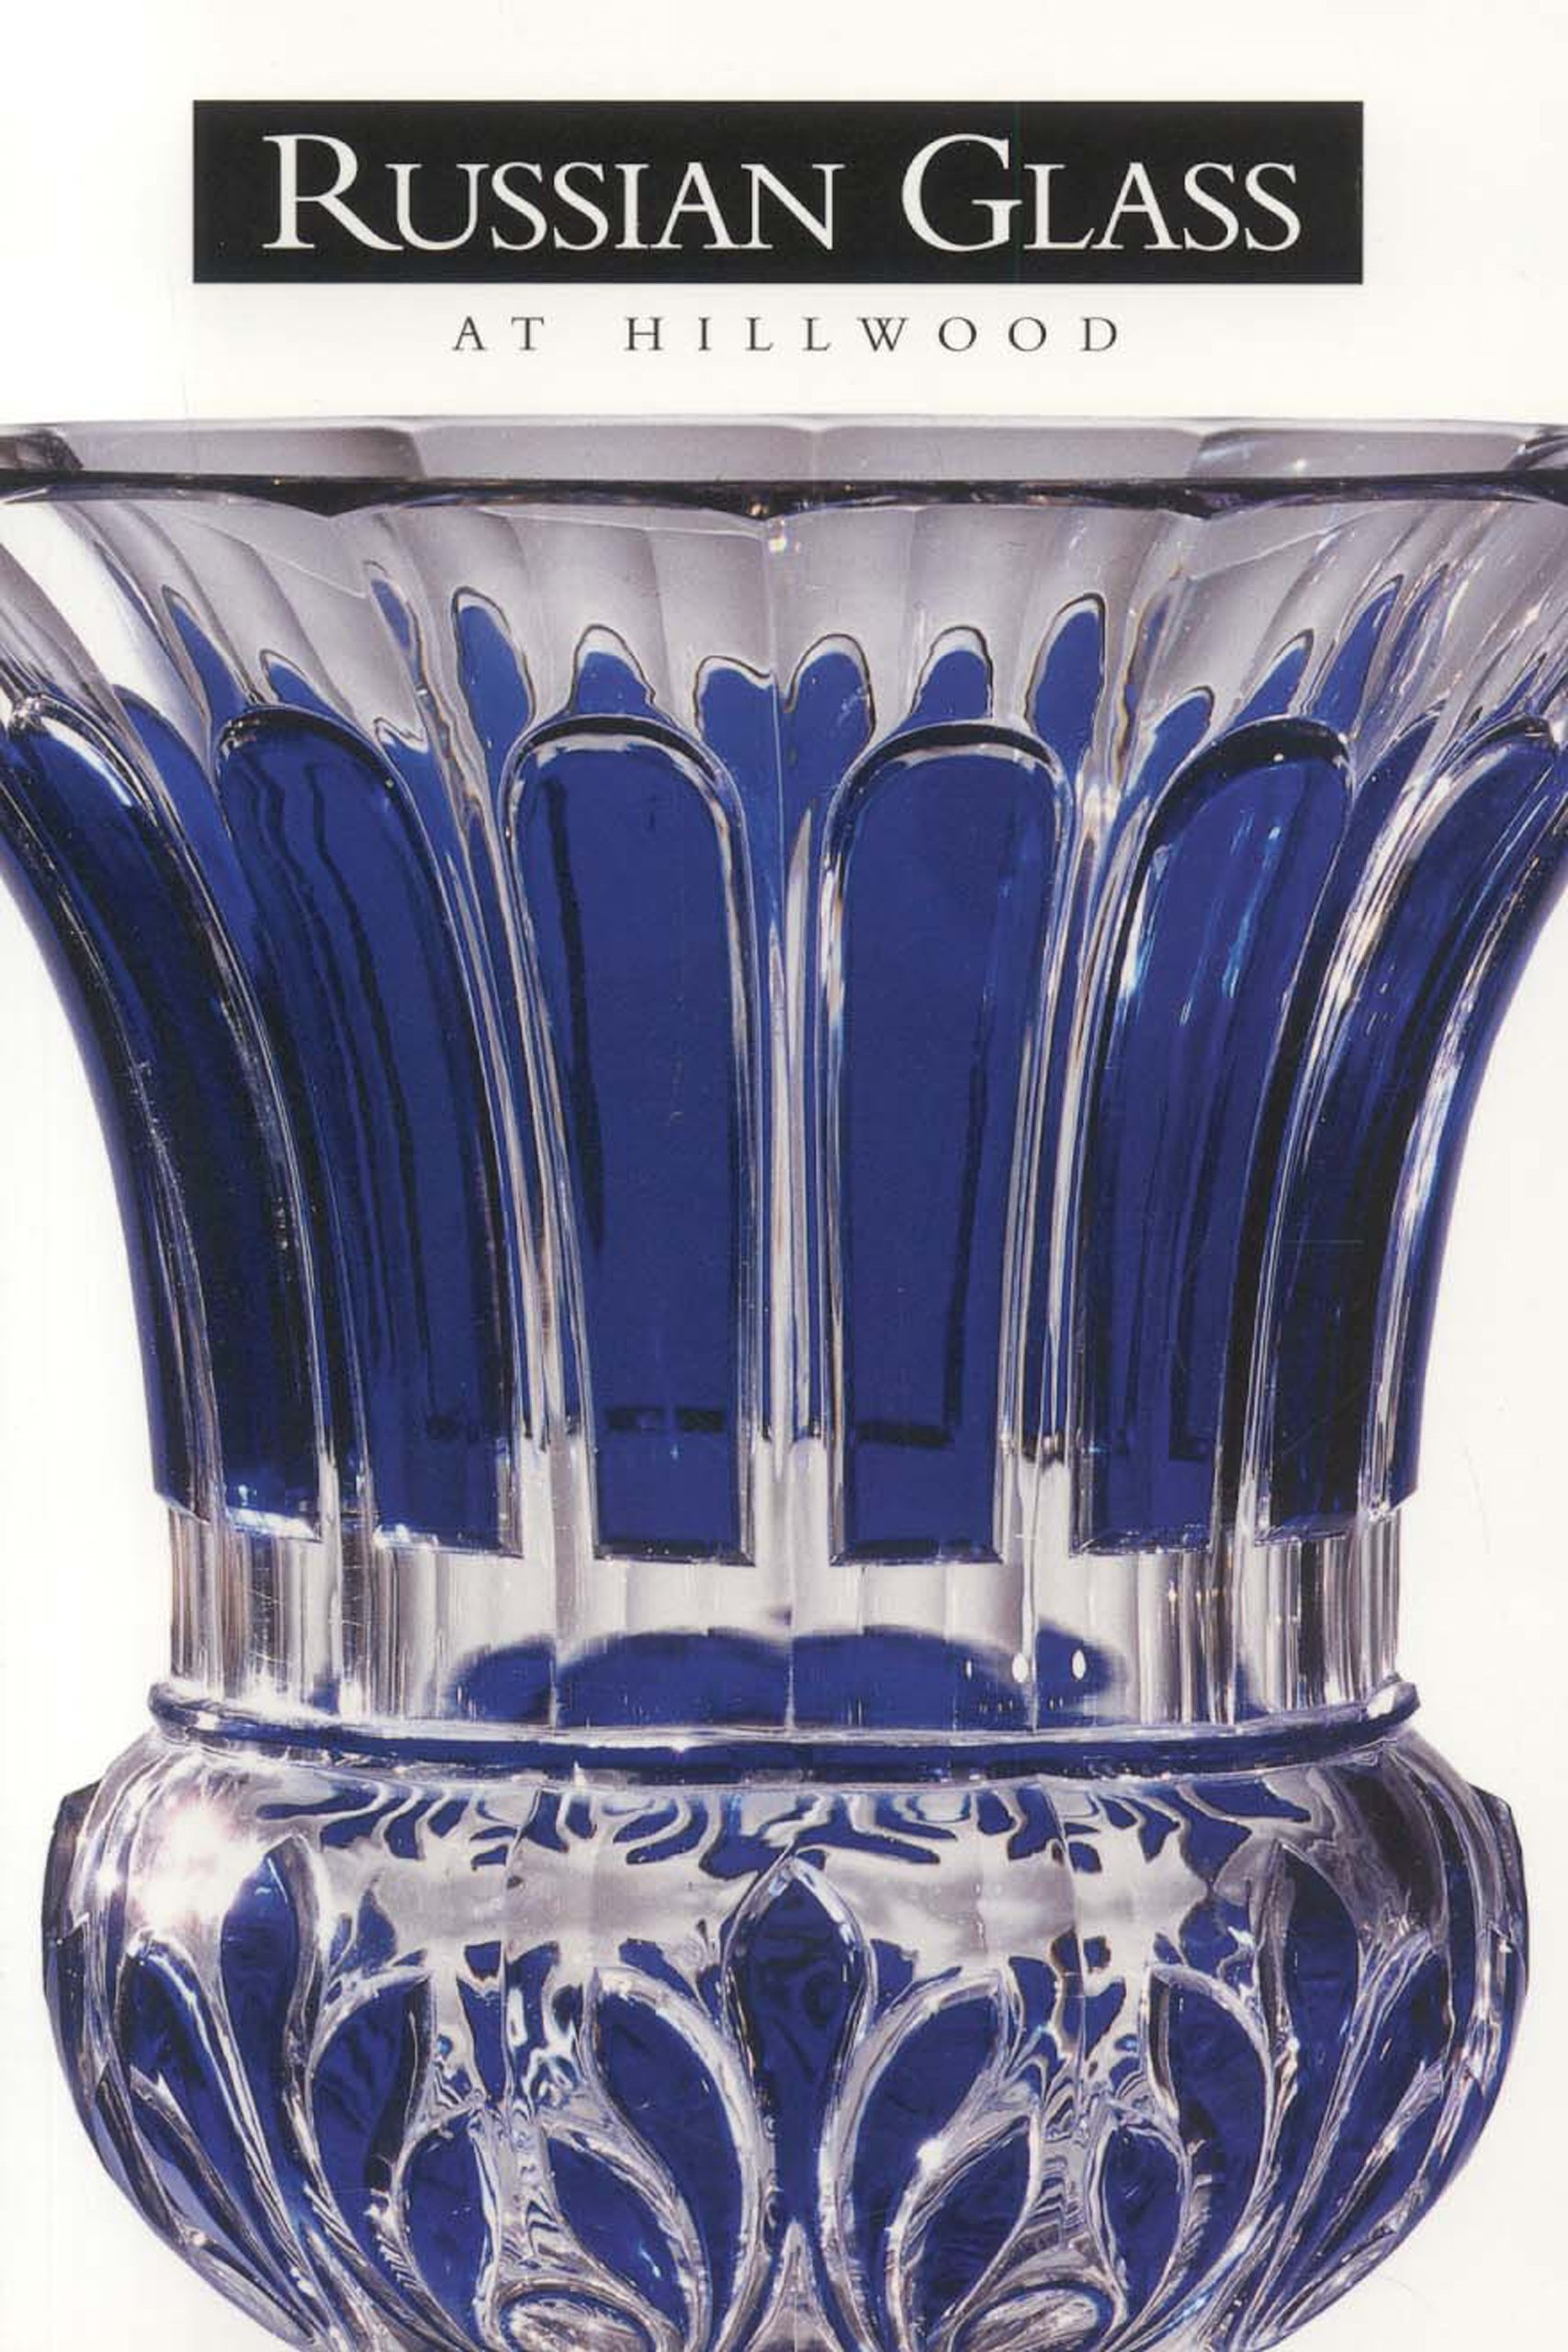 Russian Glass at Hillwood